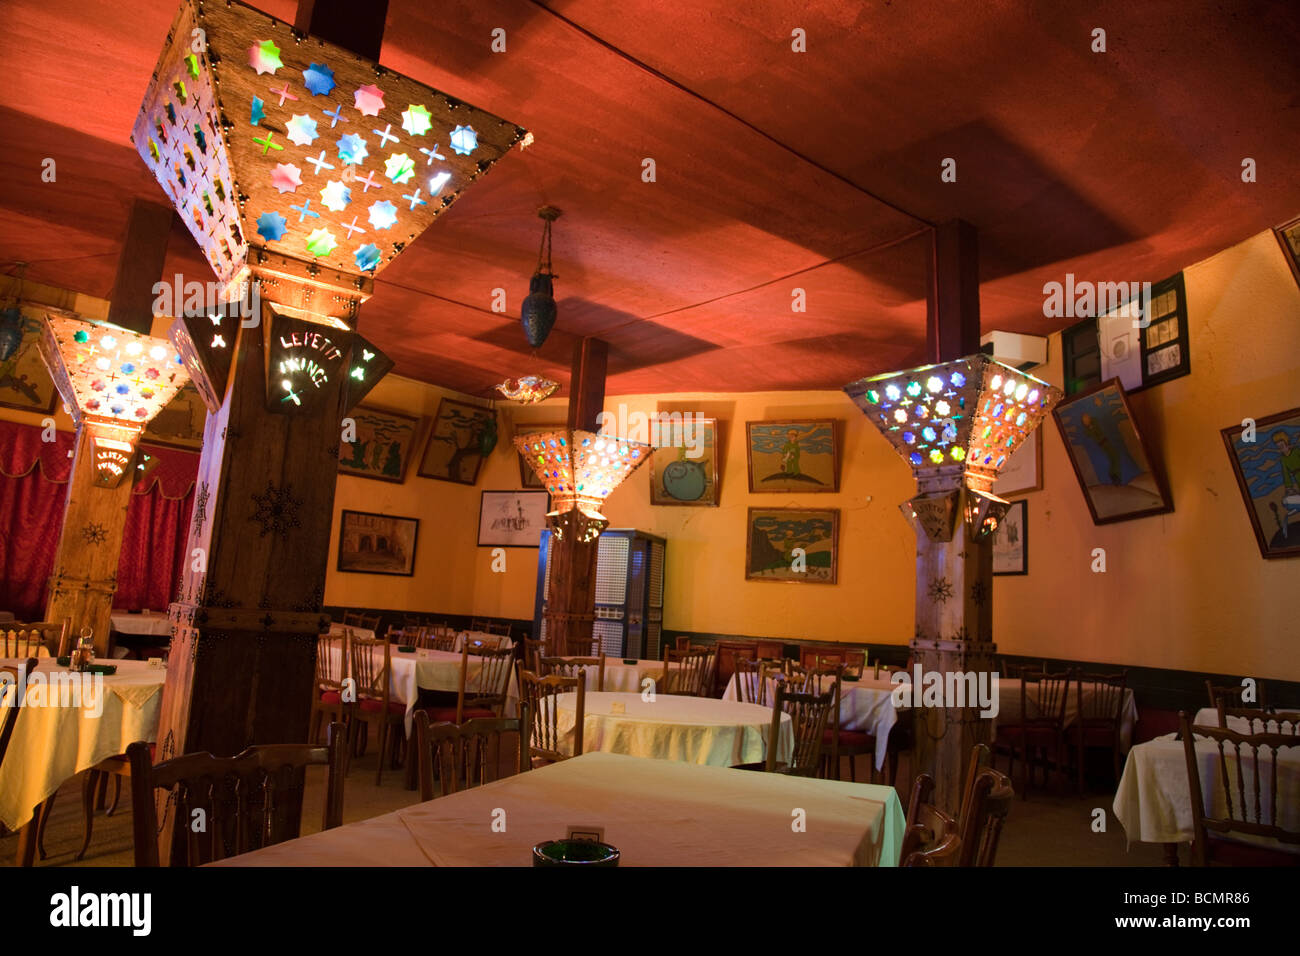 Le Petit Prince Is A Charming Bar And Restaurant In Tozeur Tunisia